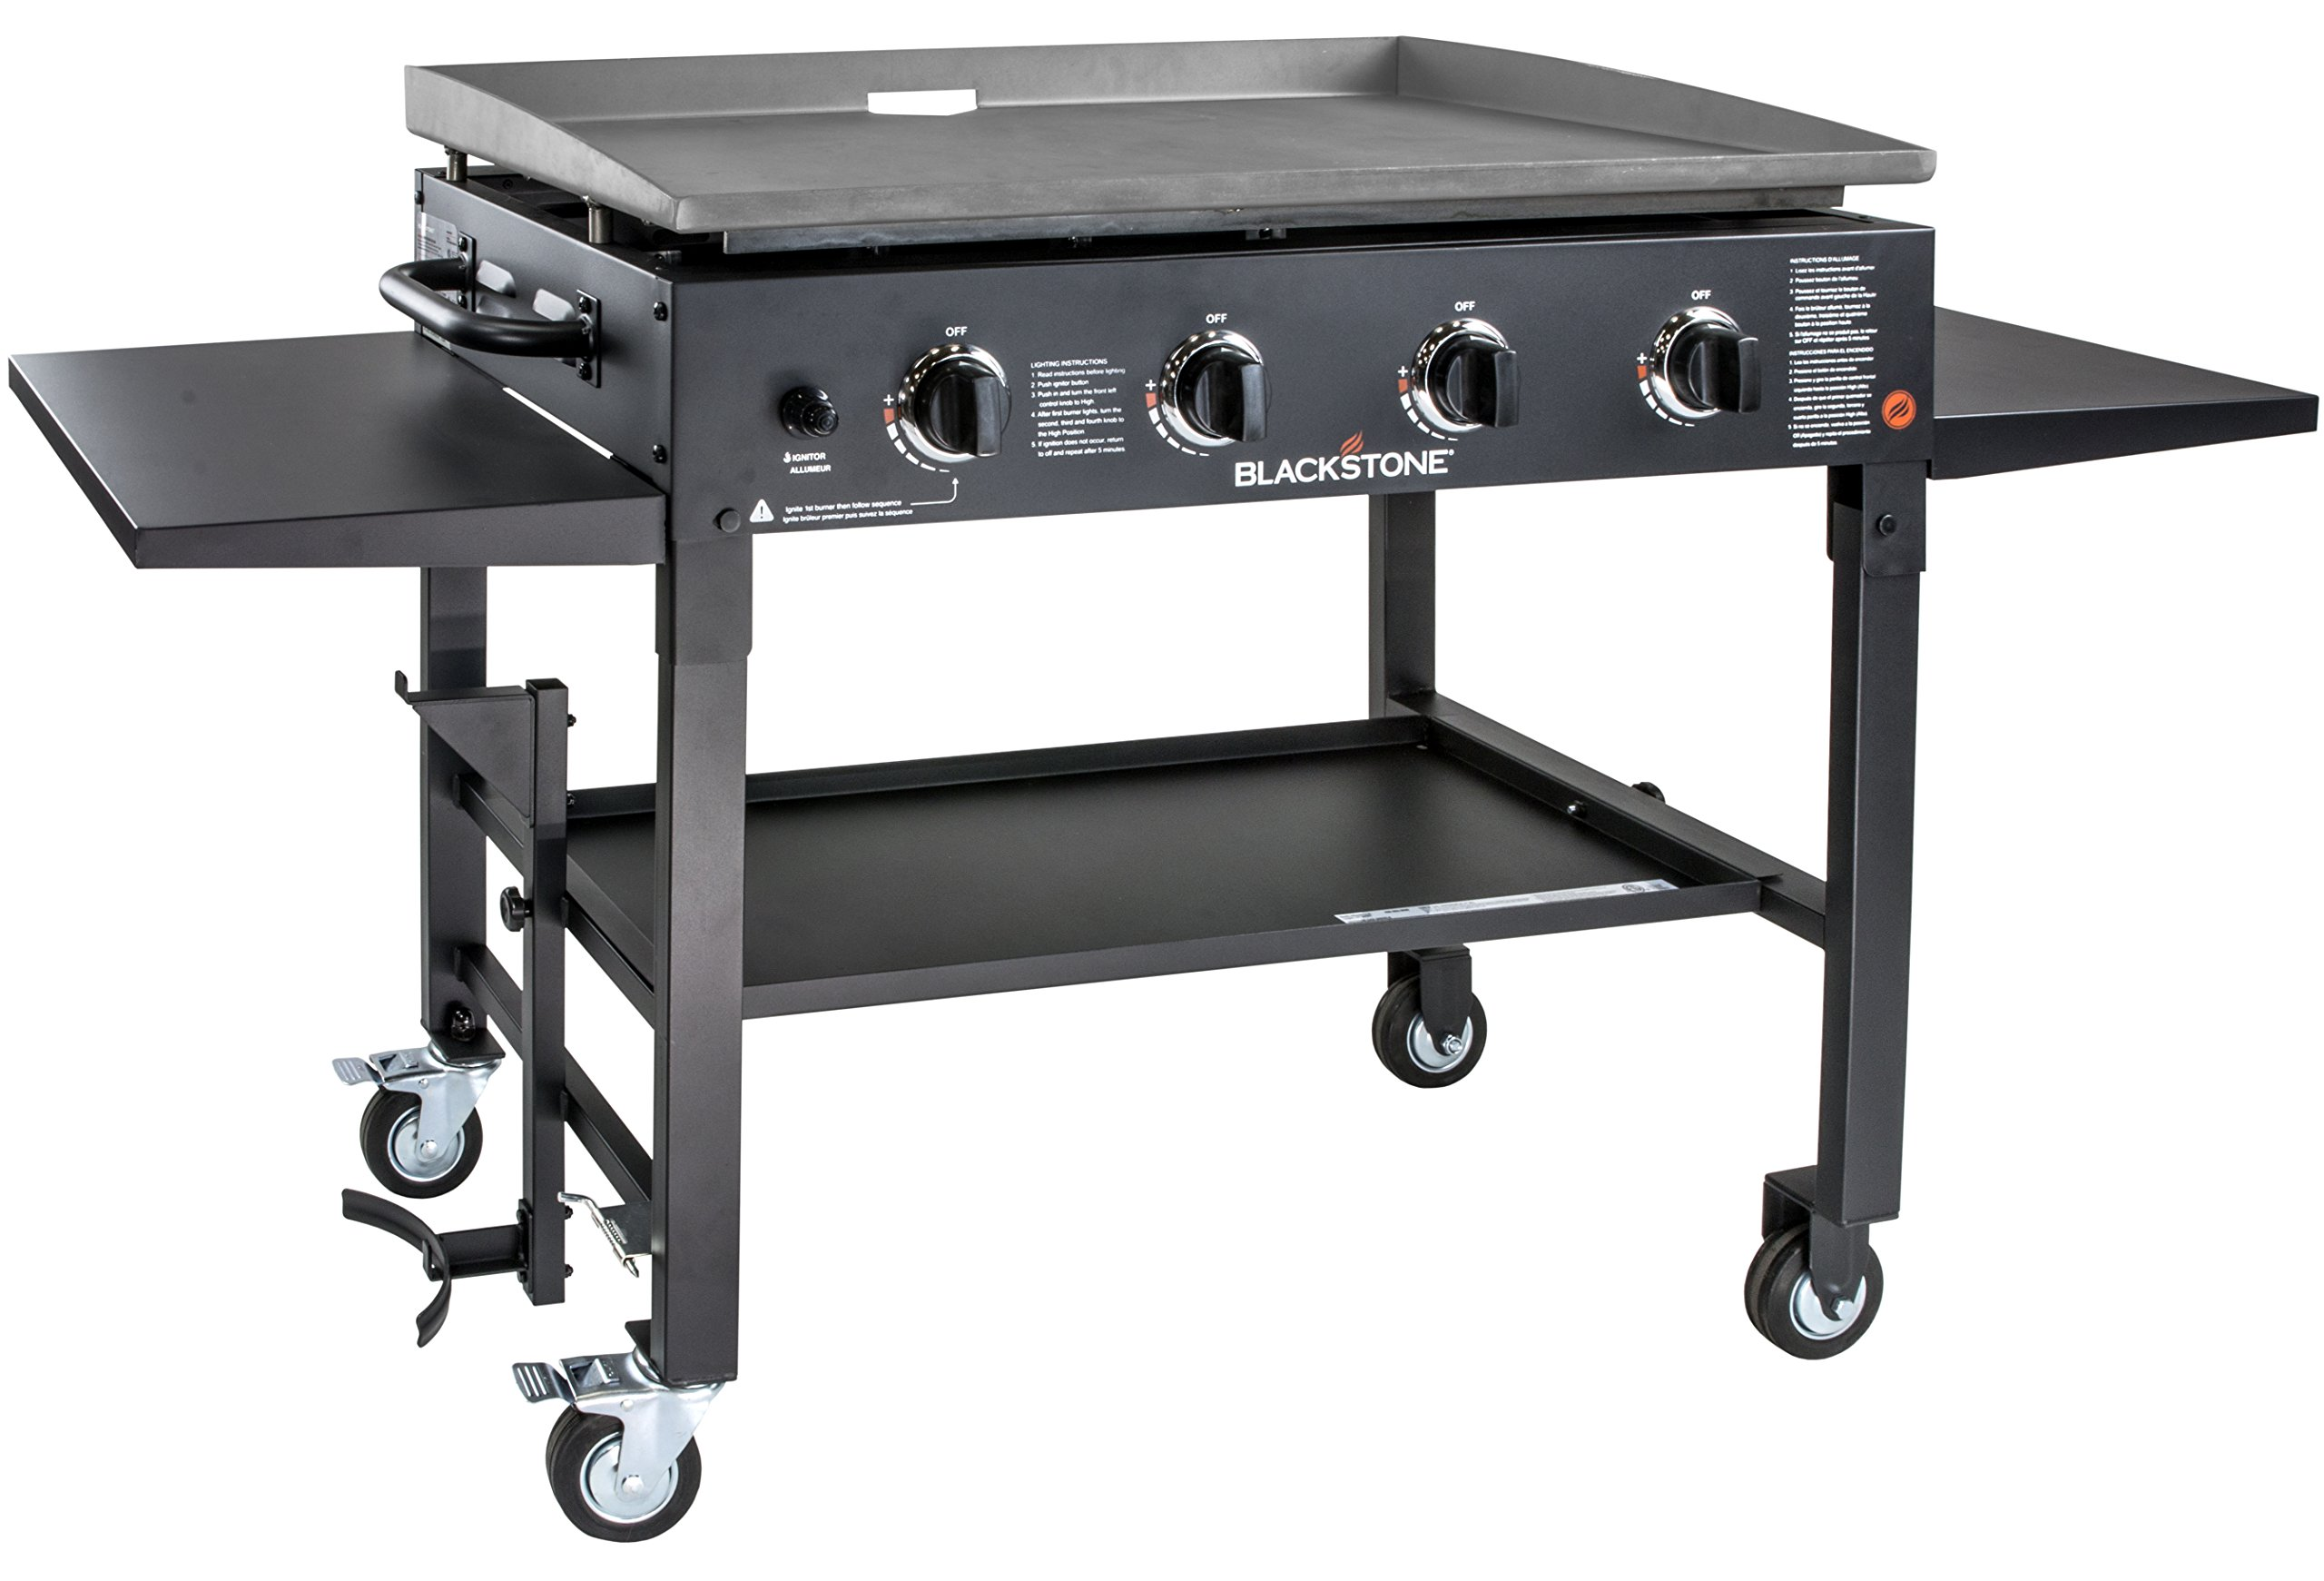 Blackstone 36 inch Outdoor Flat Top Gas Grill Griddle Station - 4-burner - Propane Fueled - Restaurant Grade - Professional Quality by Blackstone